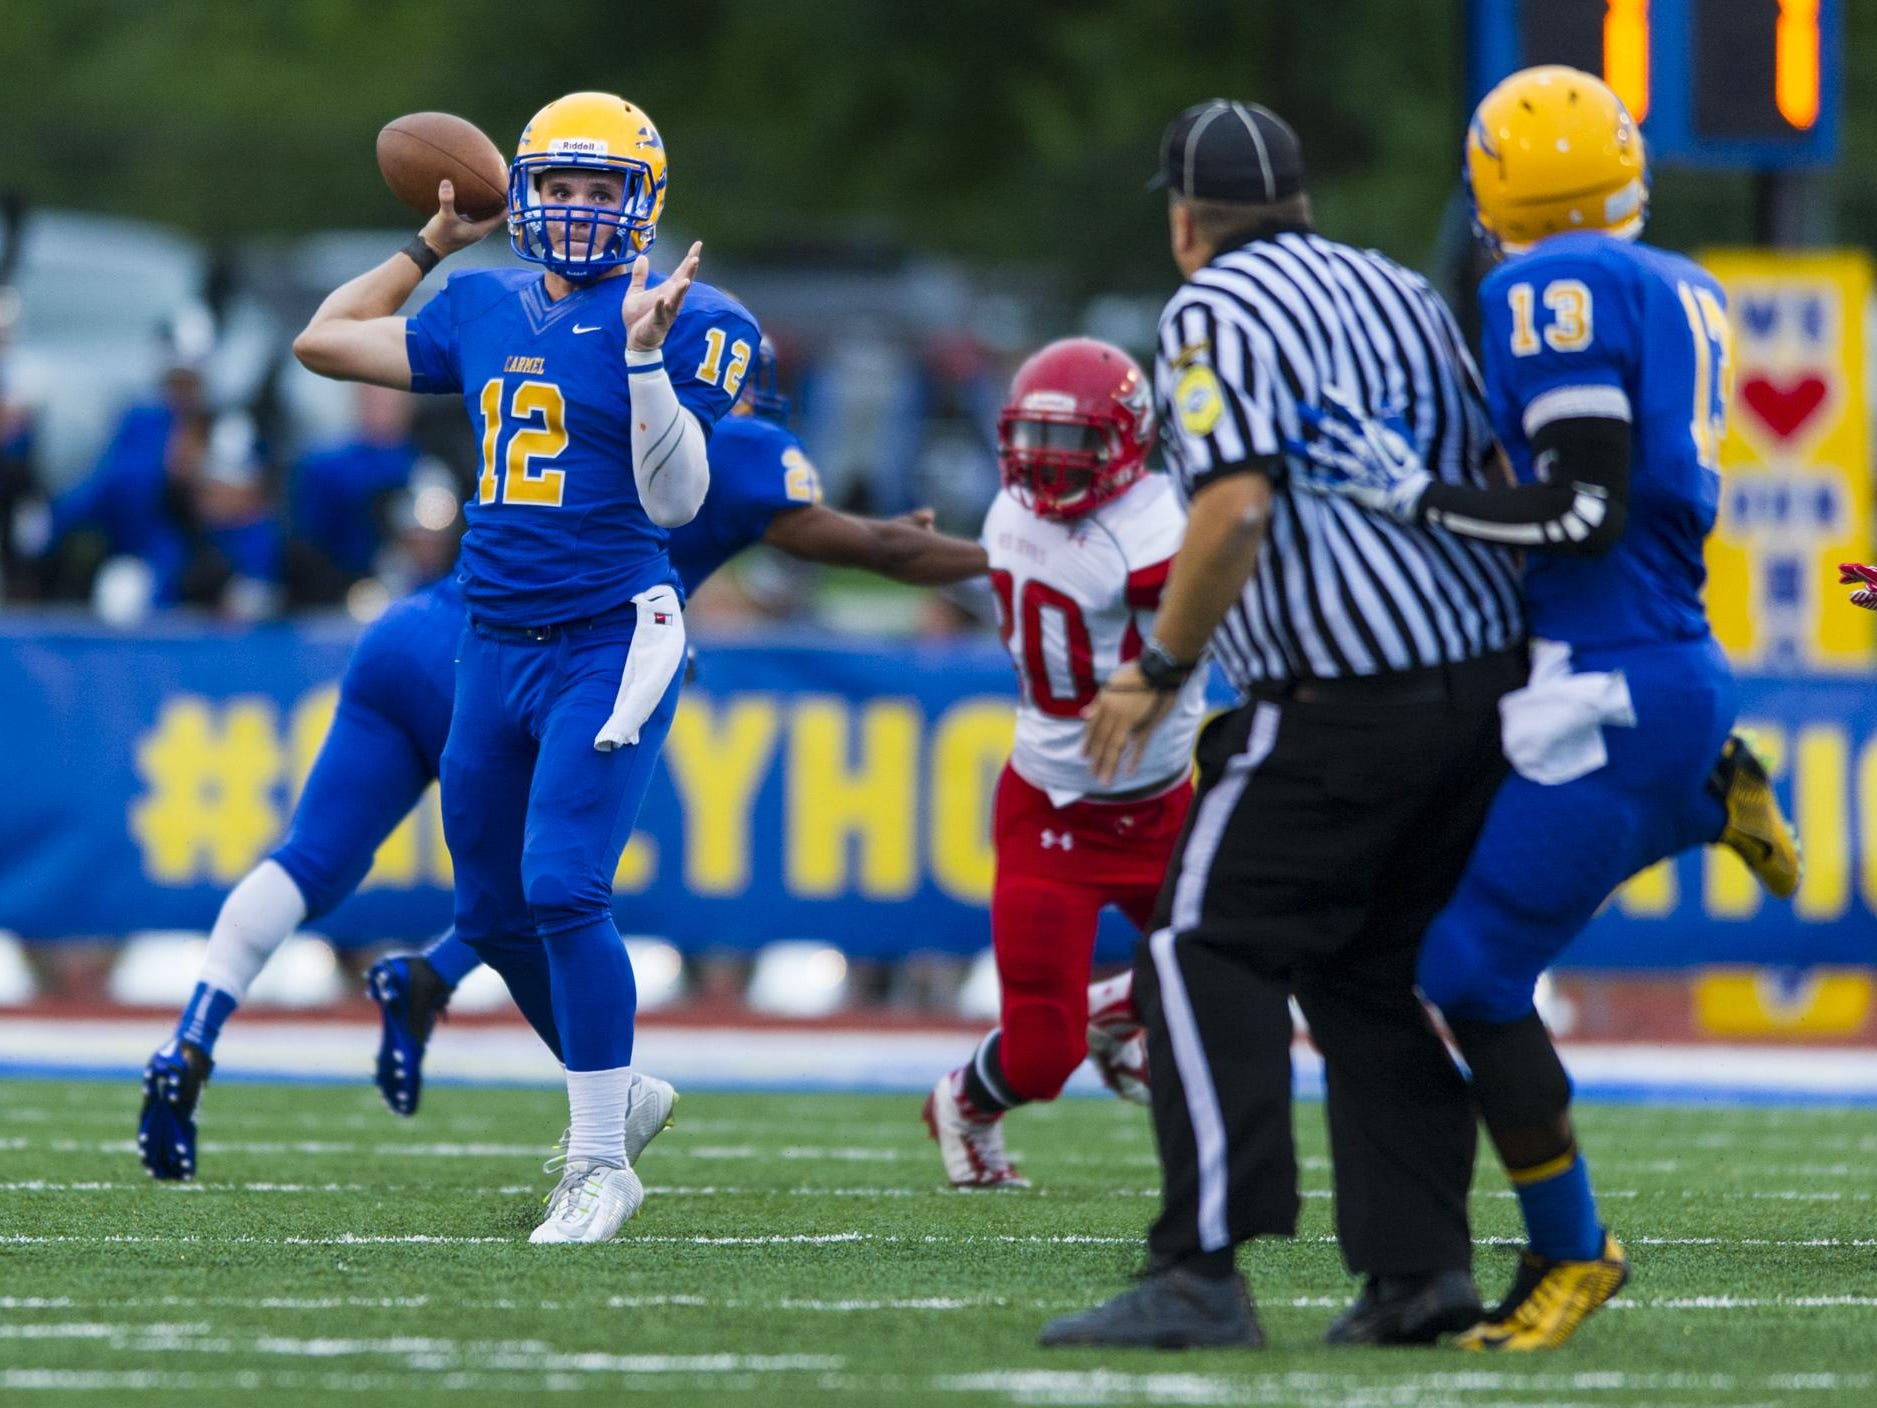 Carmel High School junior Michael Viktrup (12) pass the ball out of the backfield during the first half of action. Carmel High School hosted Pike High School in varsity football action, Friday, September 12, 2014.